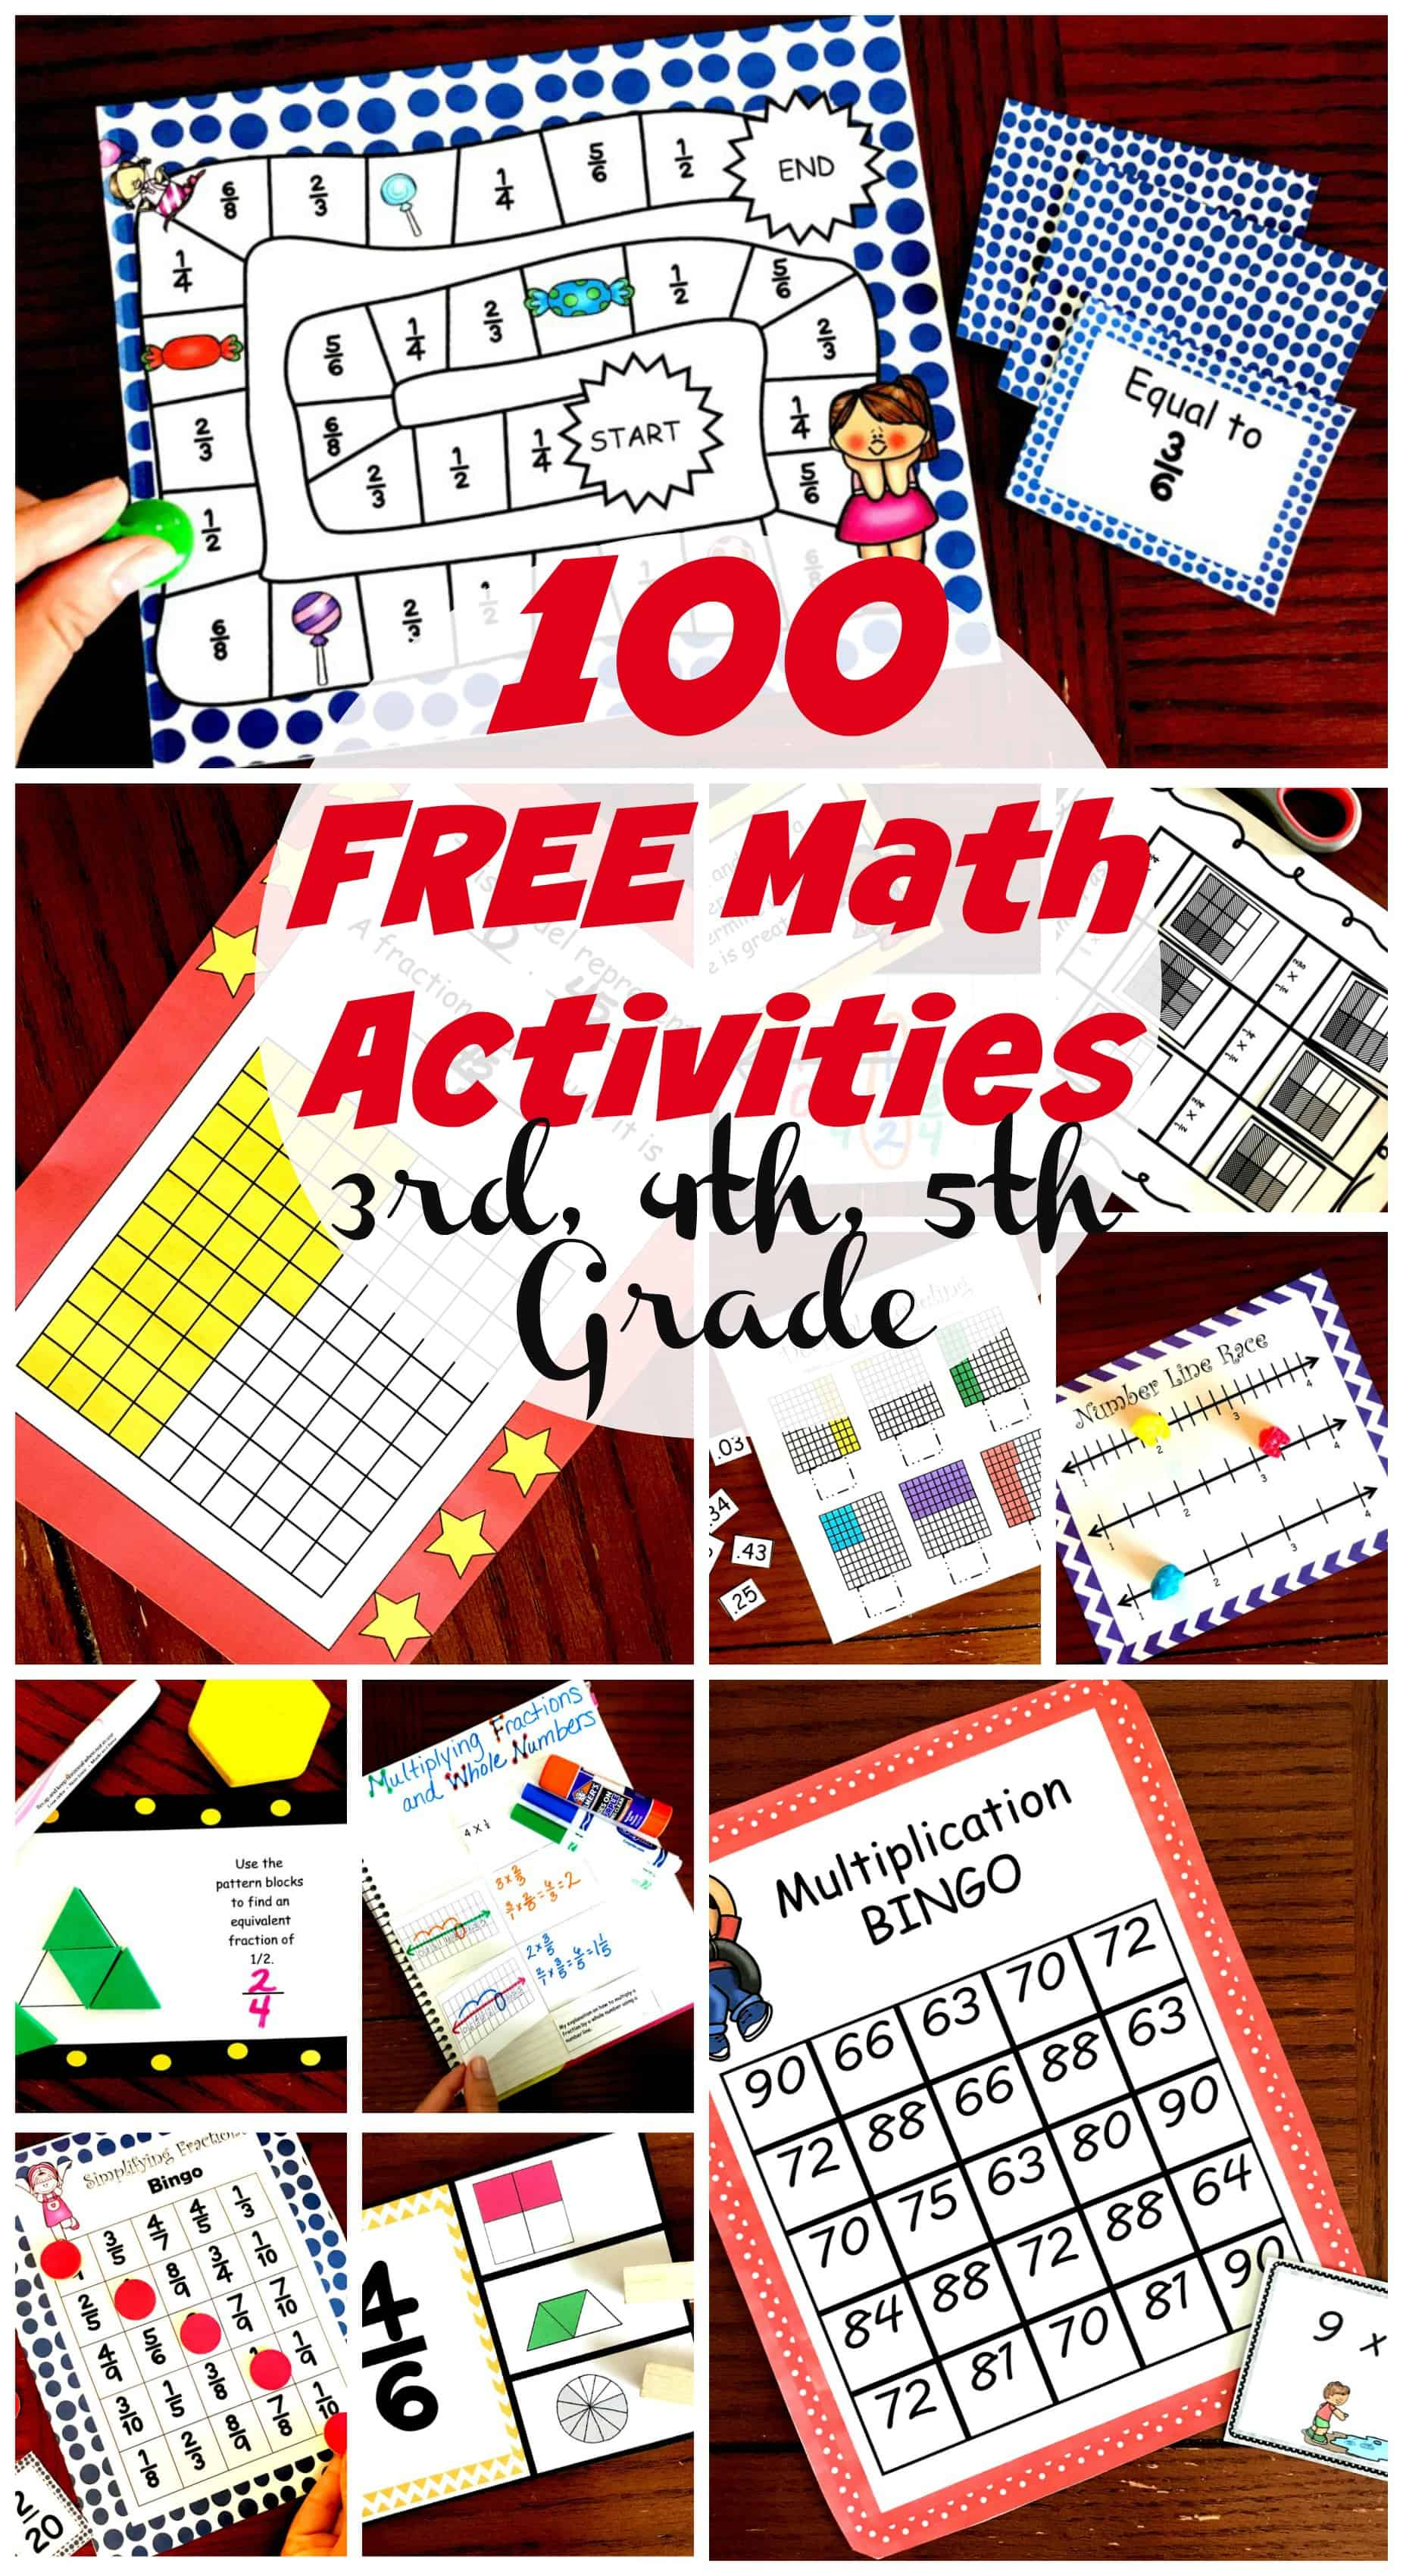 50 Awesome and Fun Math Activities for 3rd, 4th, and 5th ...